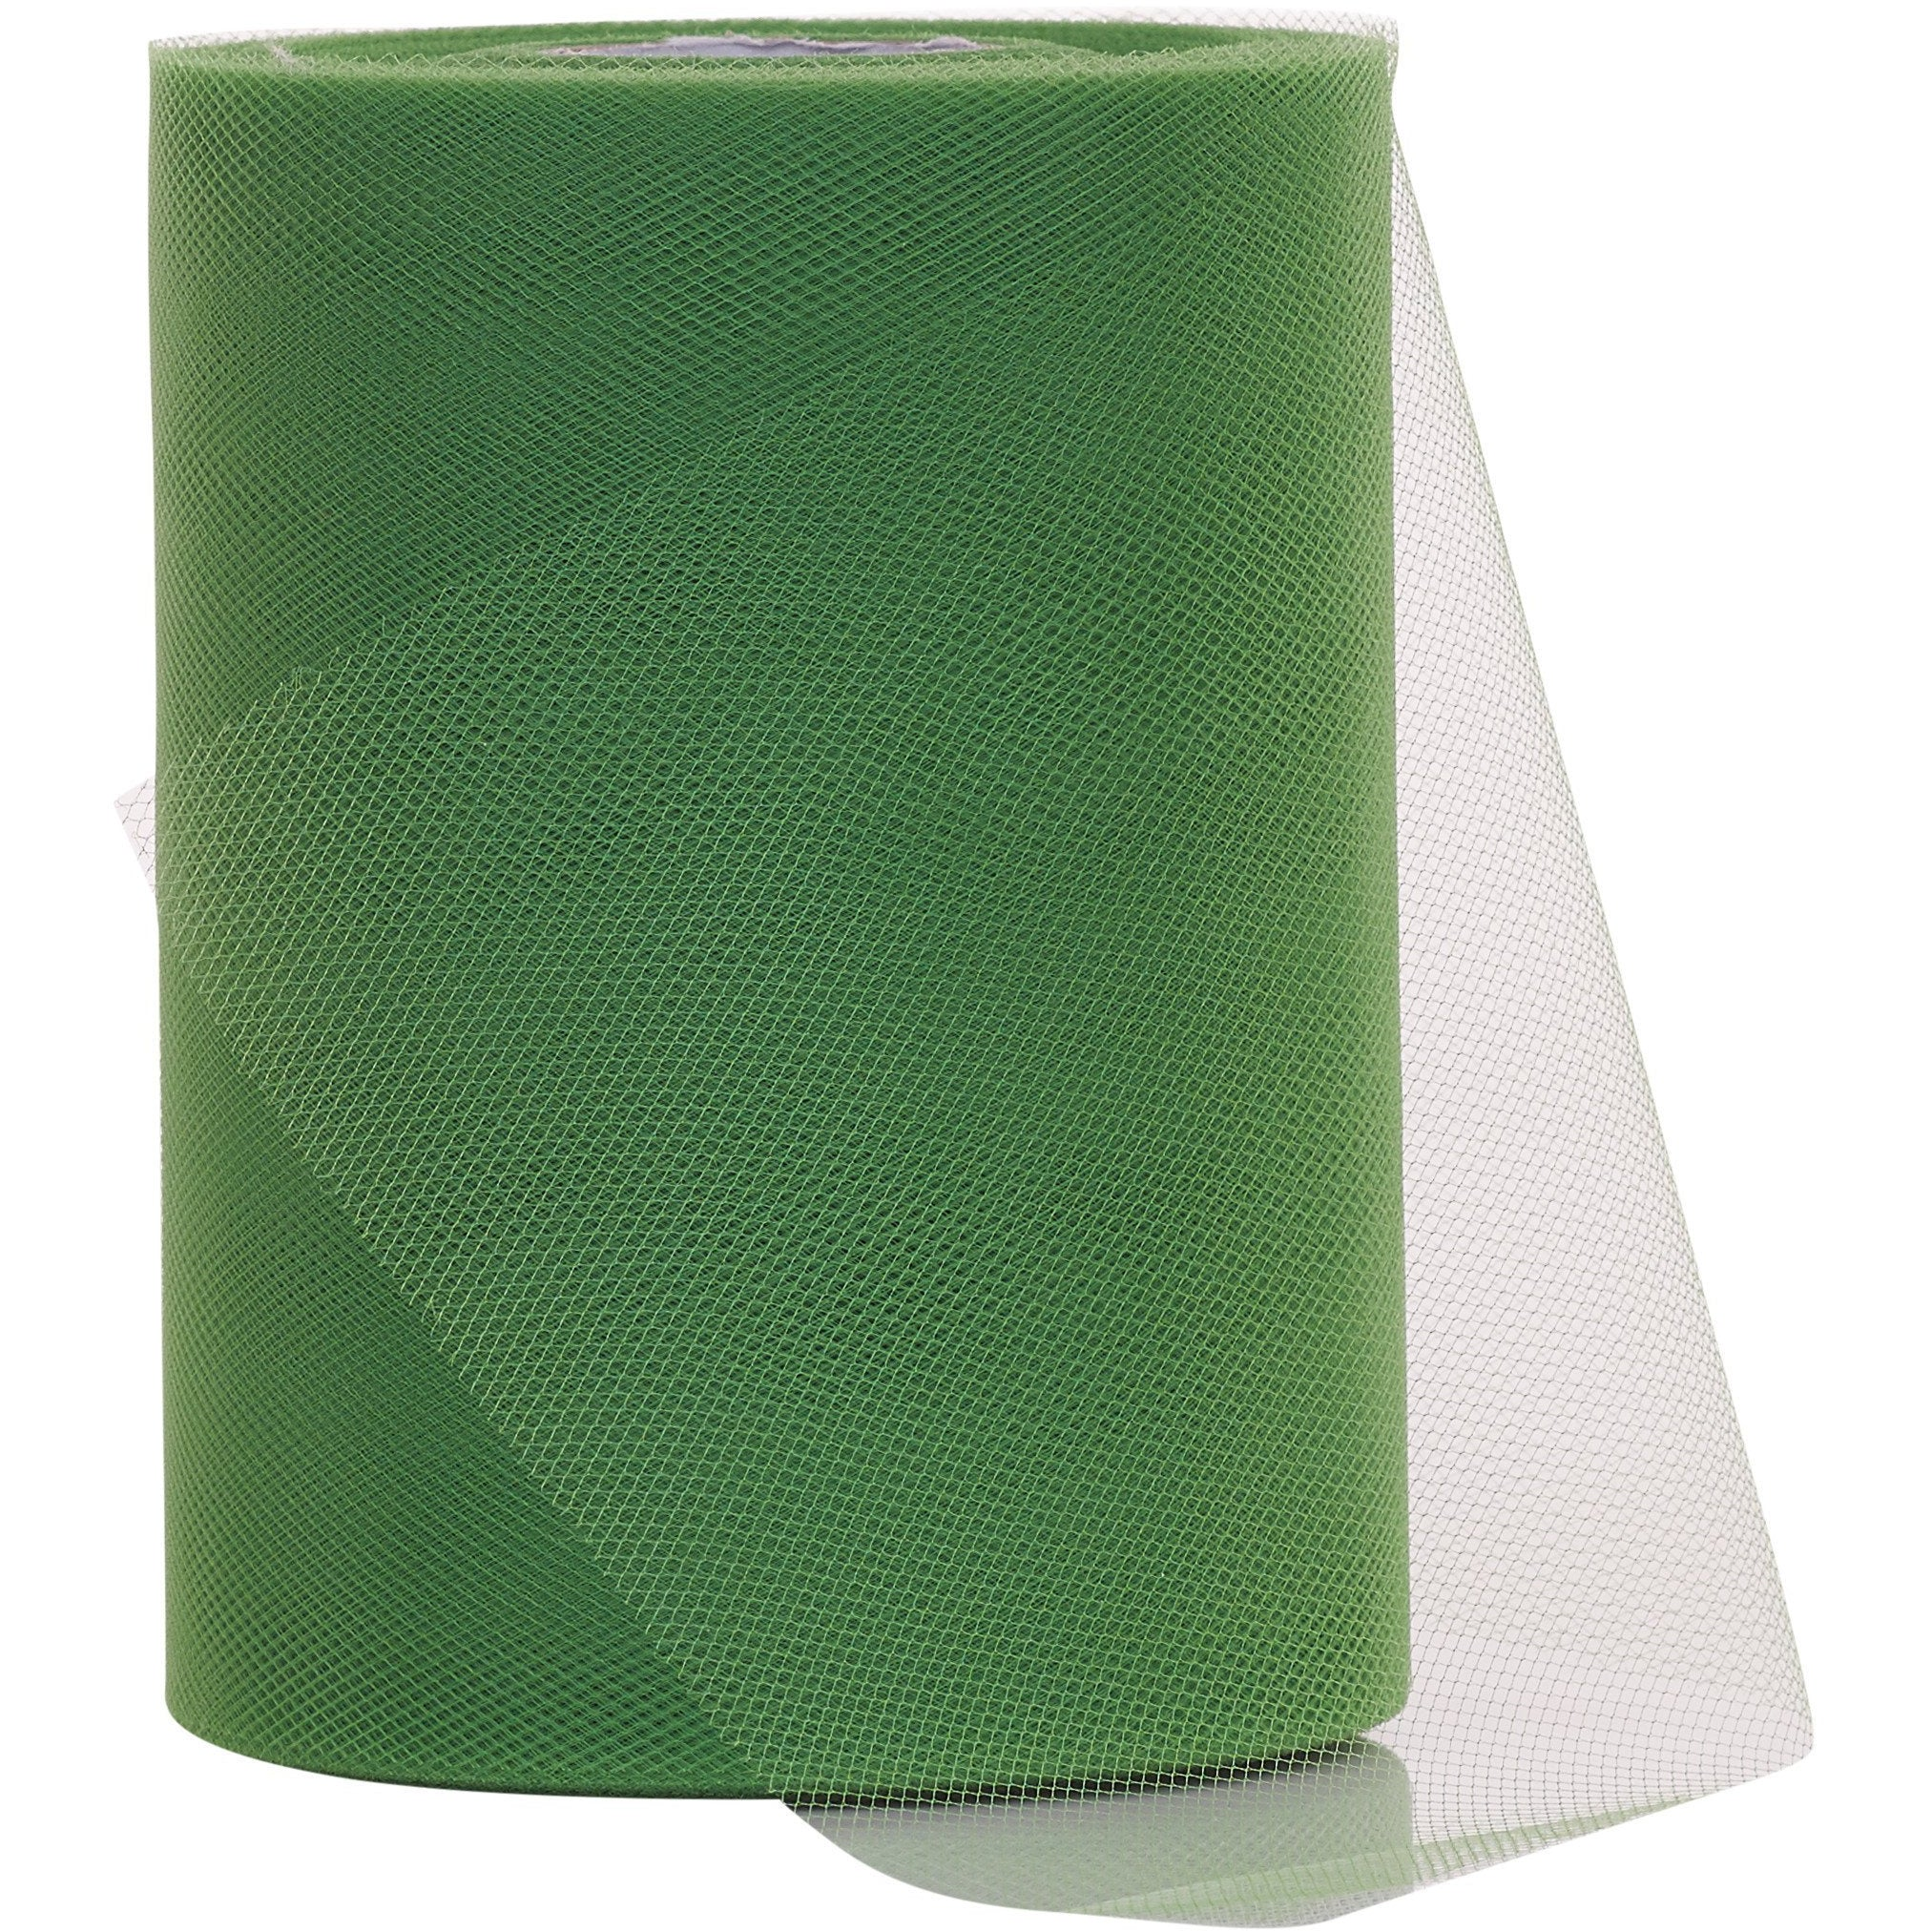 Emerald Green Tulle Fabric Roll - 100 Yards